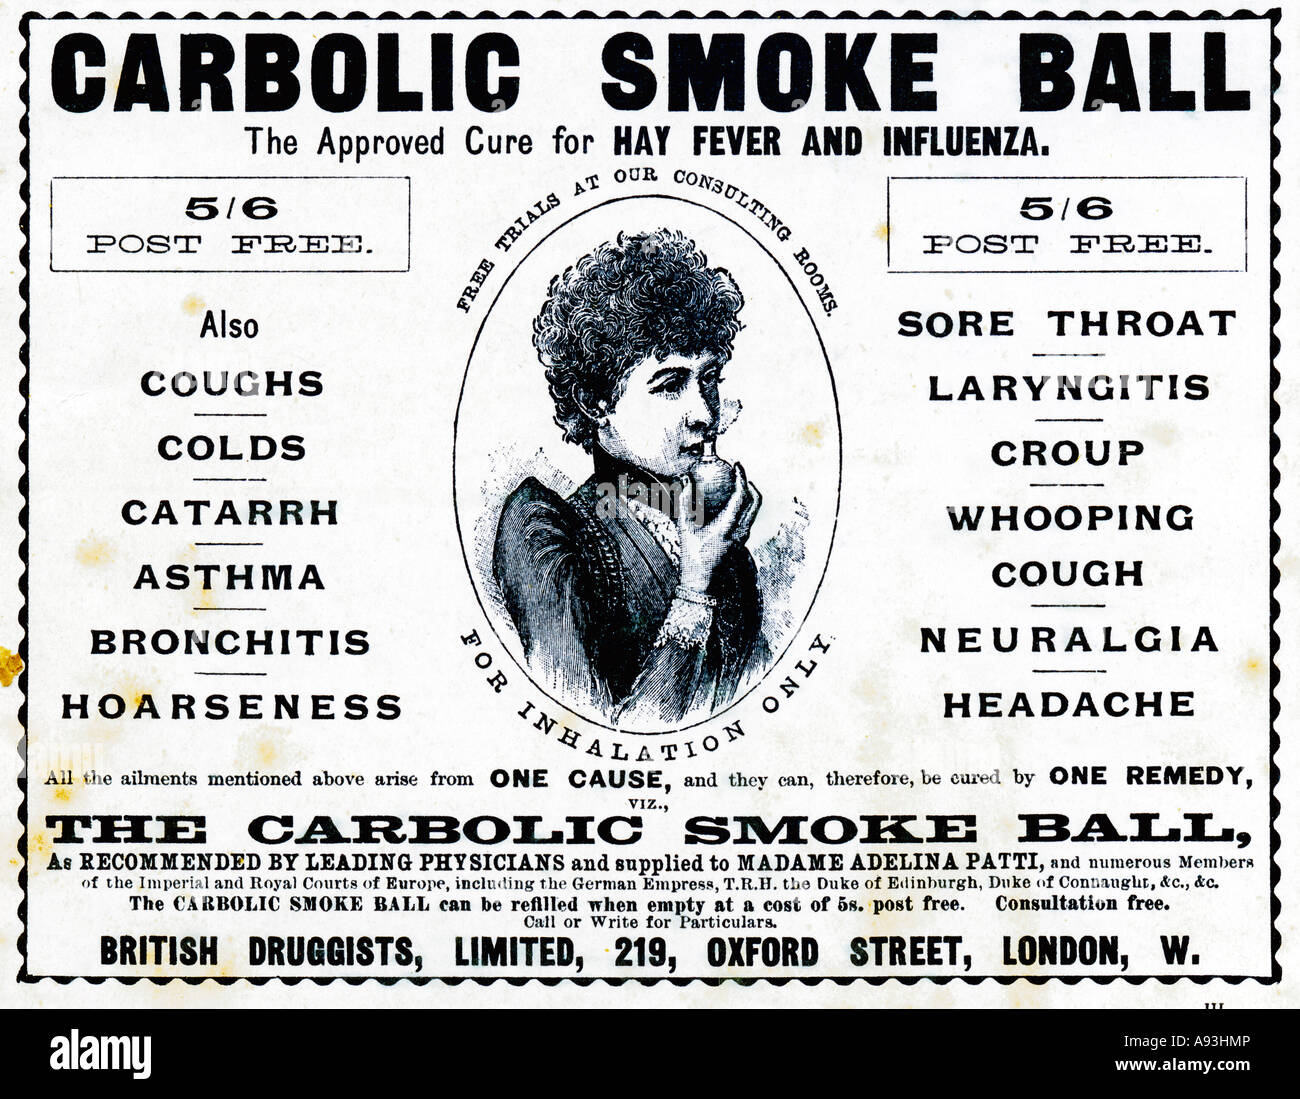 carbolic smoke ball for sale